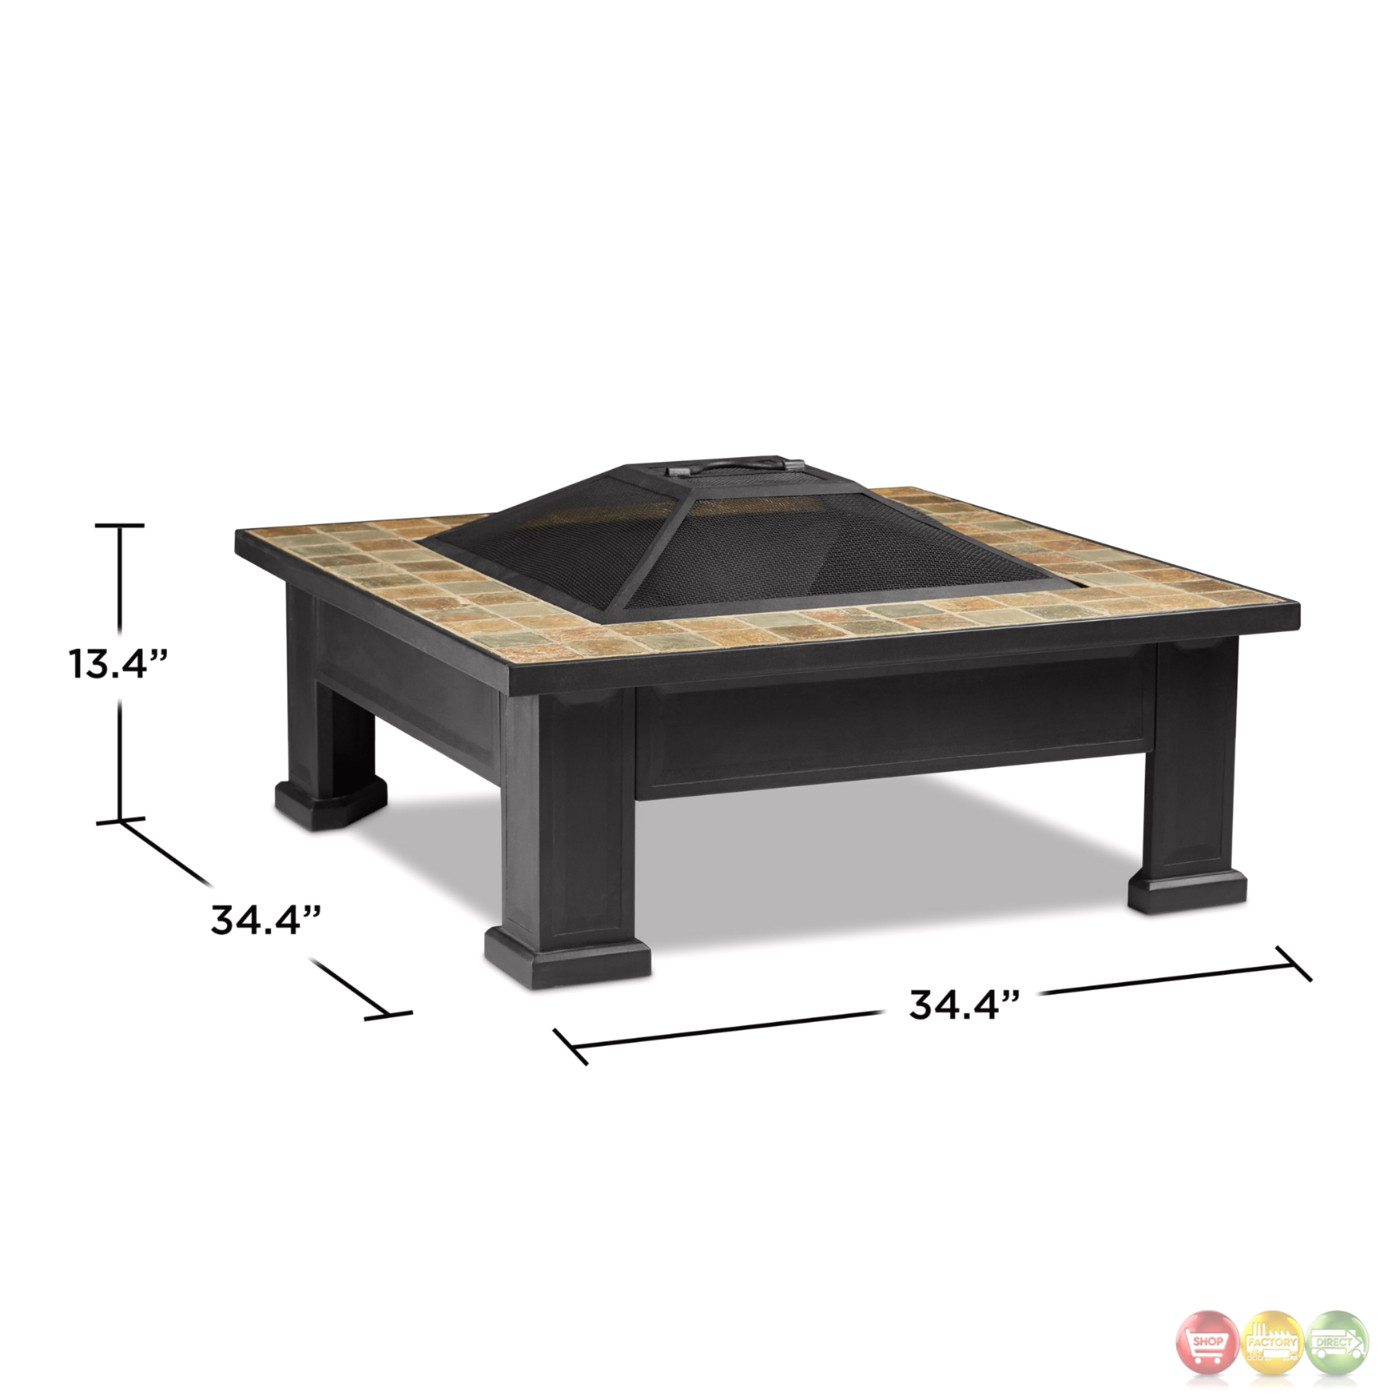 Breckenridge Outdoor Wood Burning 34 Quot Square Fire Pit With